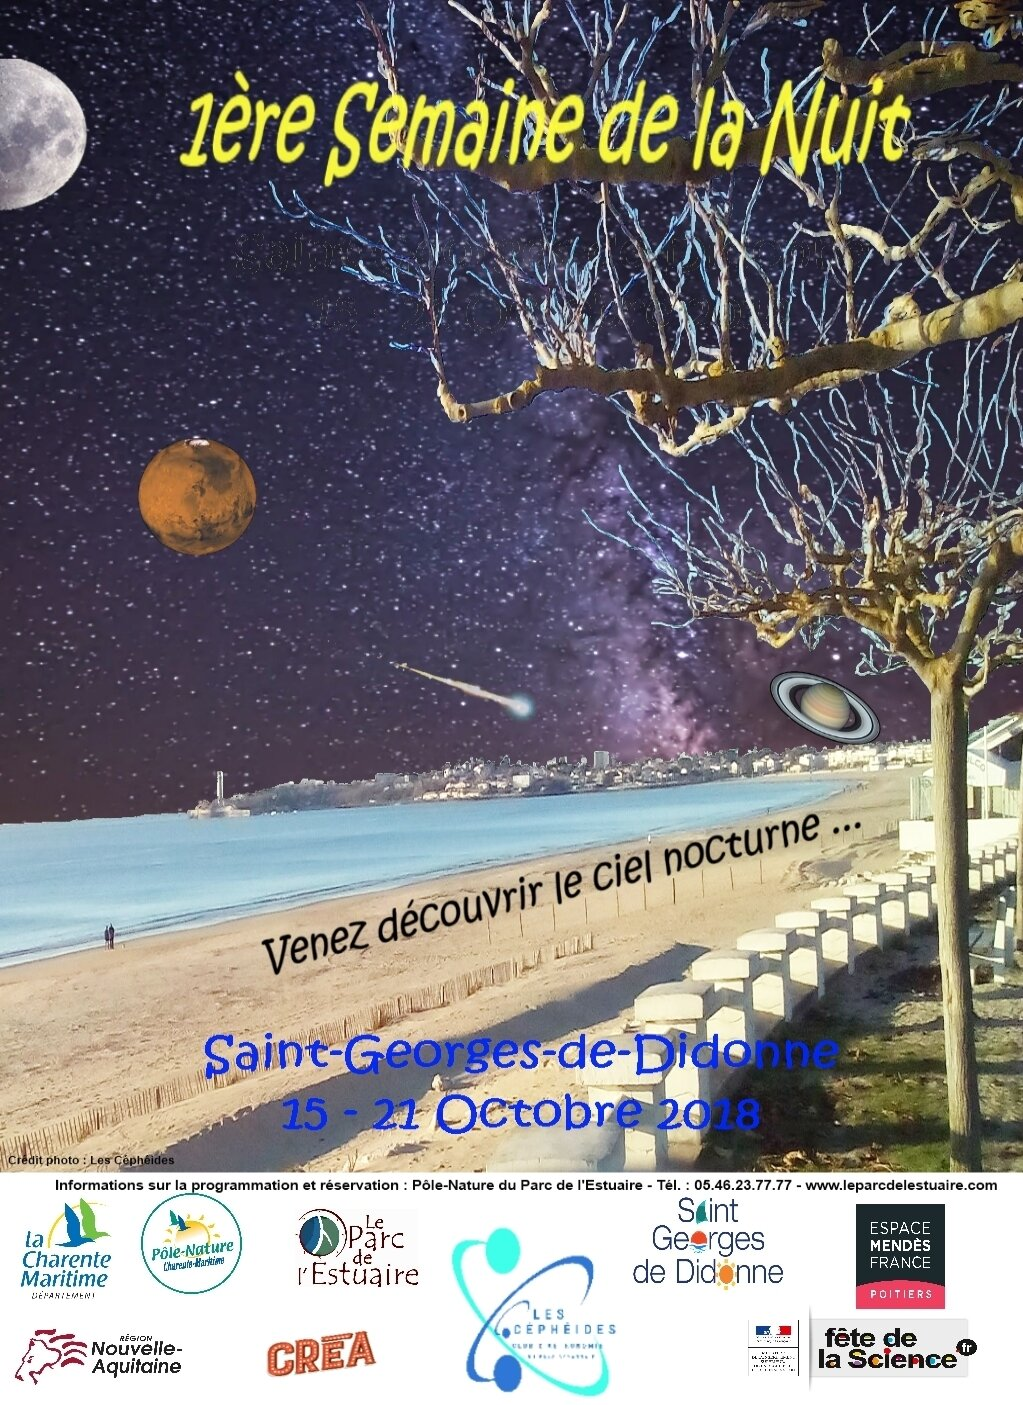 Vendredi 19 Octobre 2018 - 21h - Saint Georges de Didonne